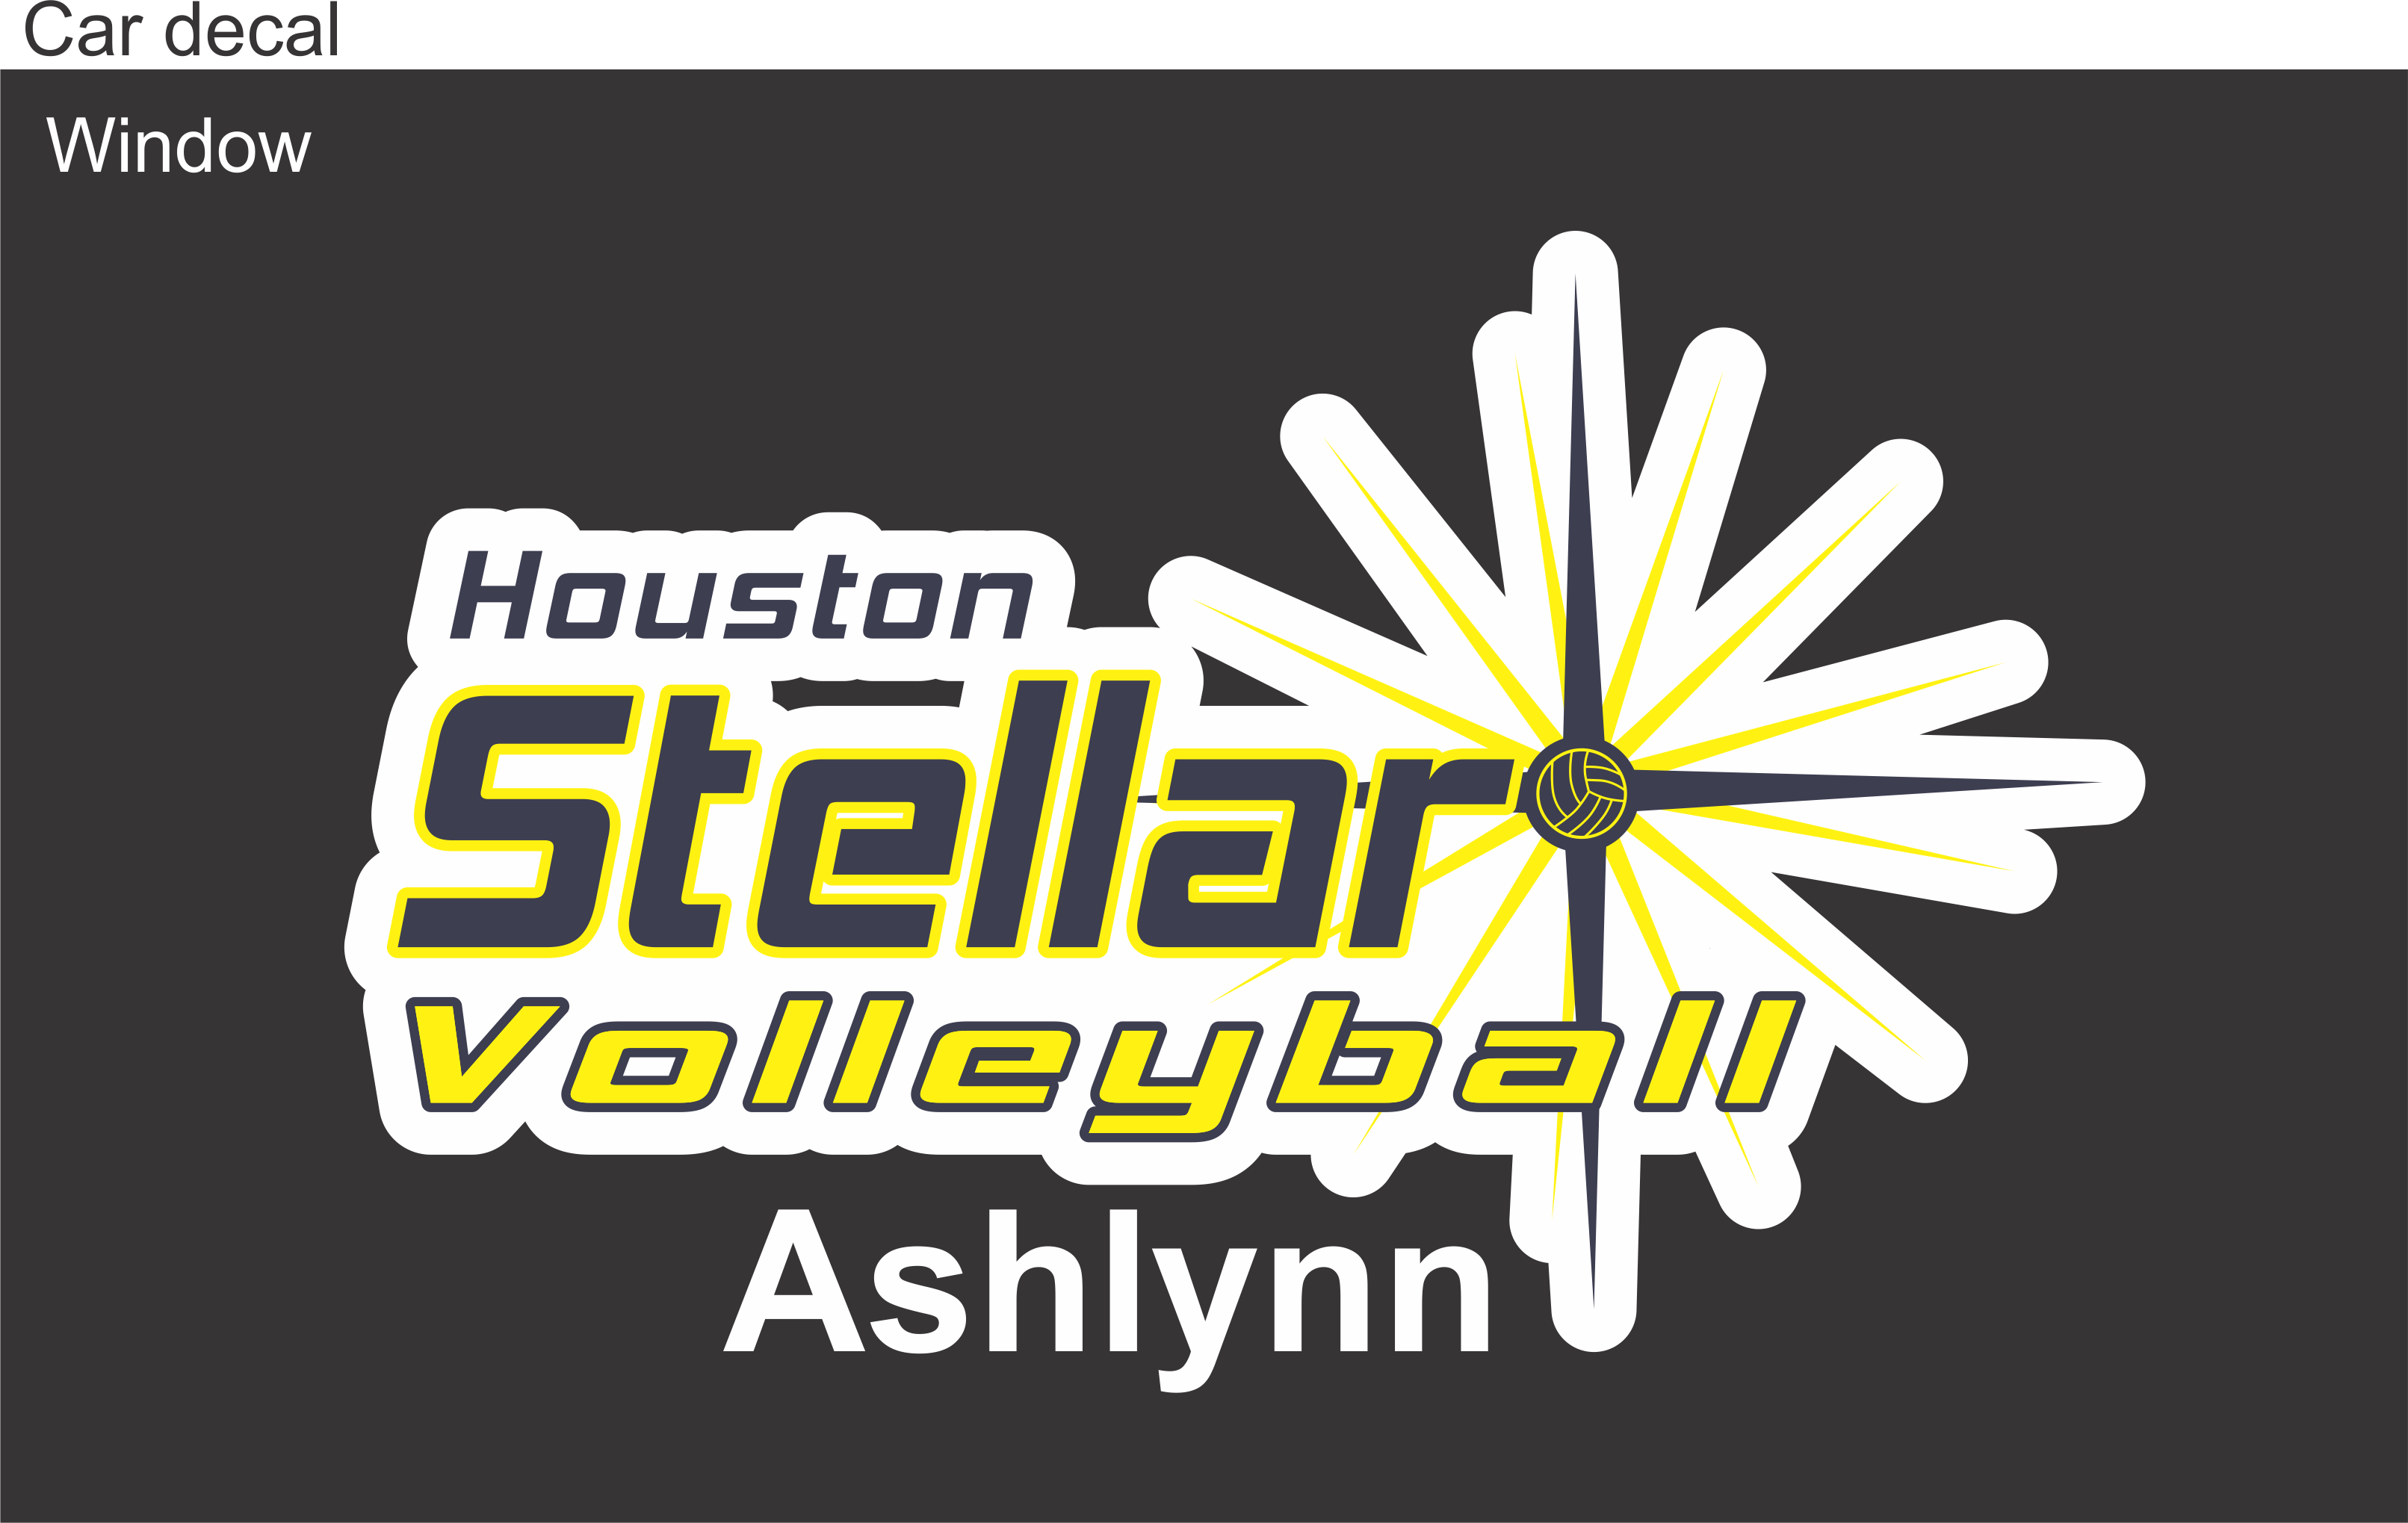 Houston Stellar Personalized Bag Tags  Pinnacle Sign Company - Custom car decals houston   how to personalize